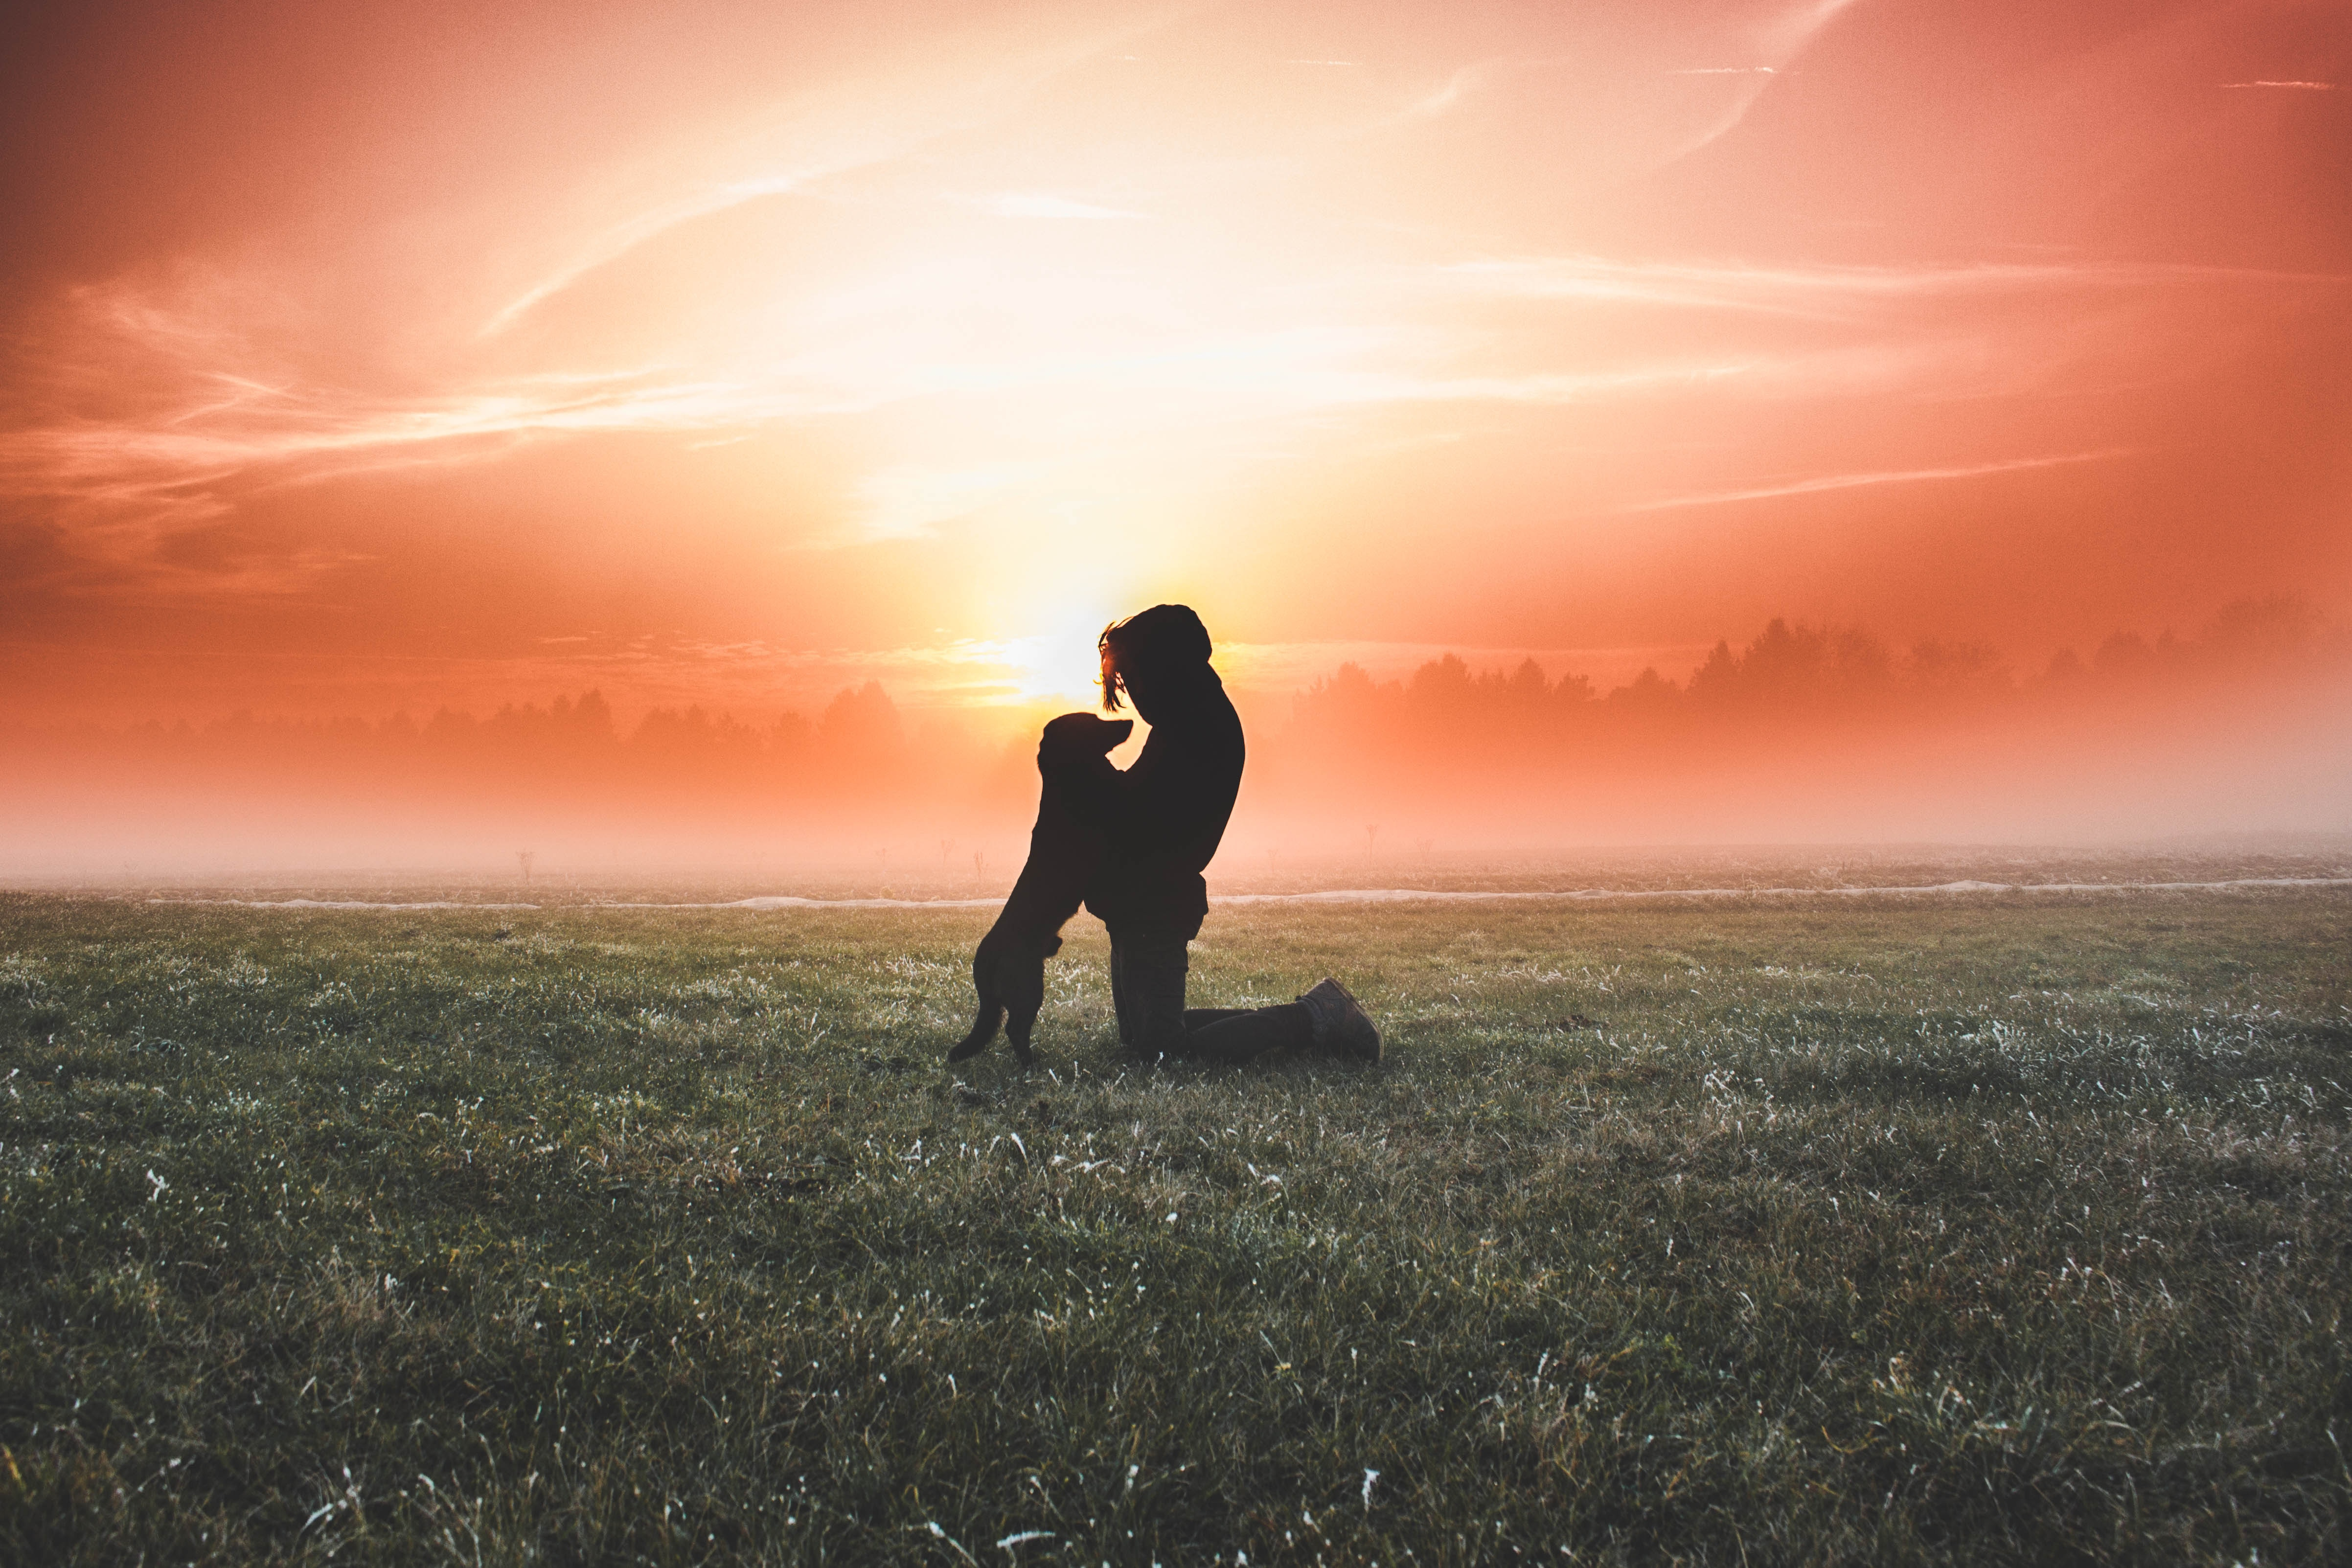 76957 free wallpaper 2160x3840 for phone, download images Silhouette, Miscellanea, Miscellaneous, Dog, Fog, Field, Human, Person 2160x3840 for mobile